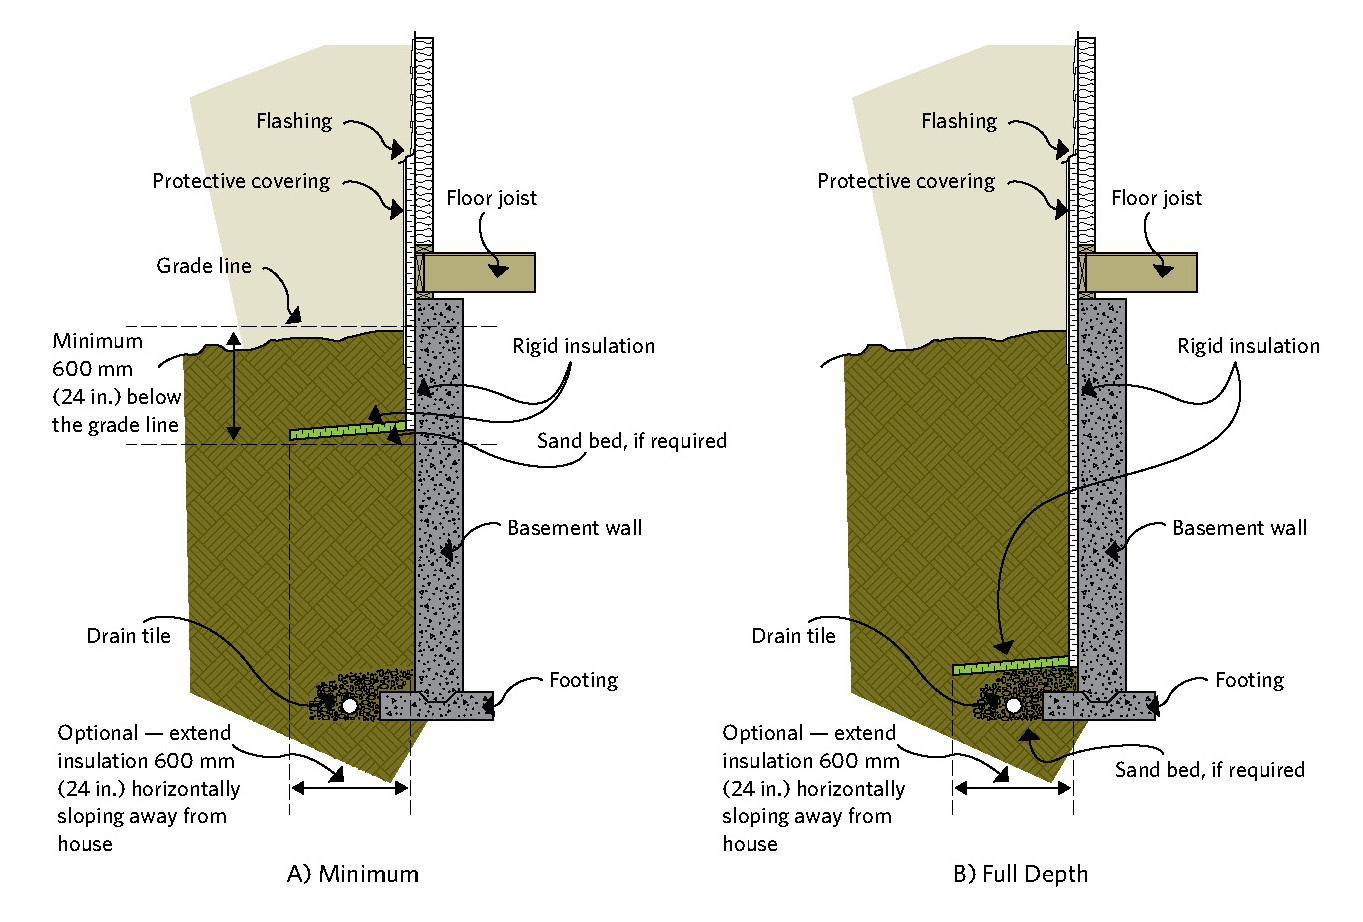 Figure 6-4 Exterior basement insulation